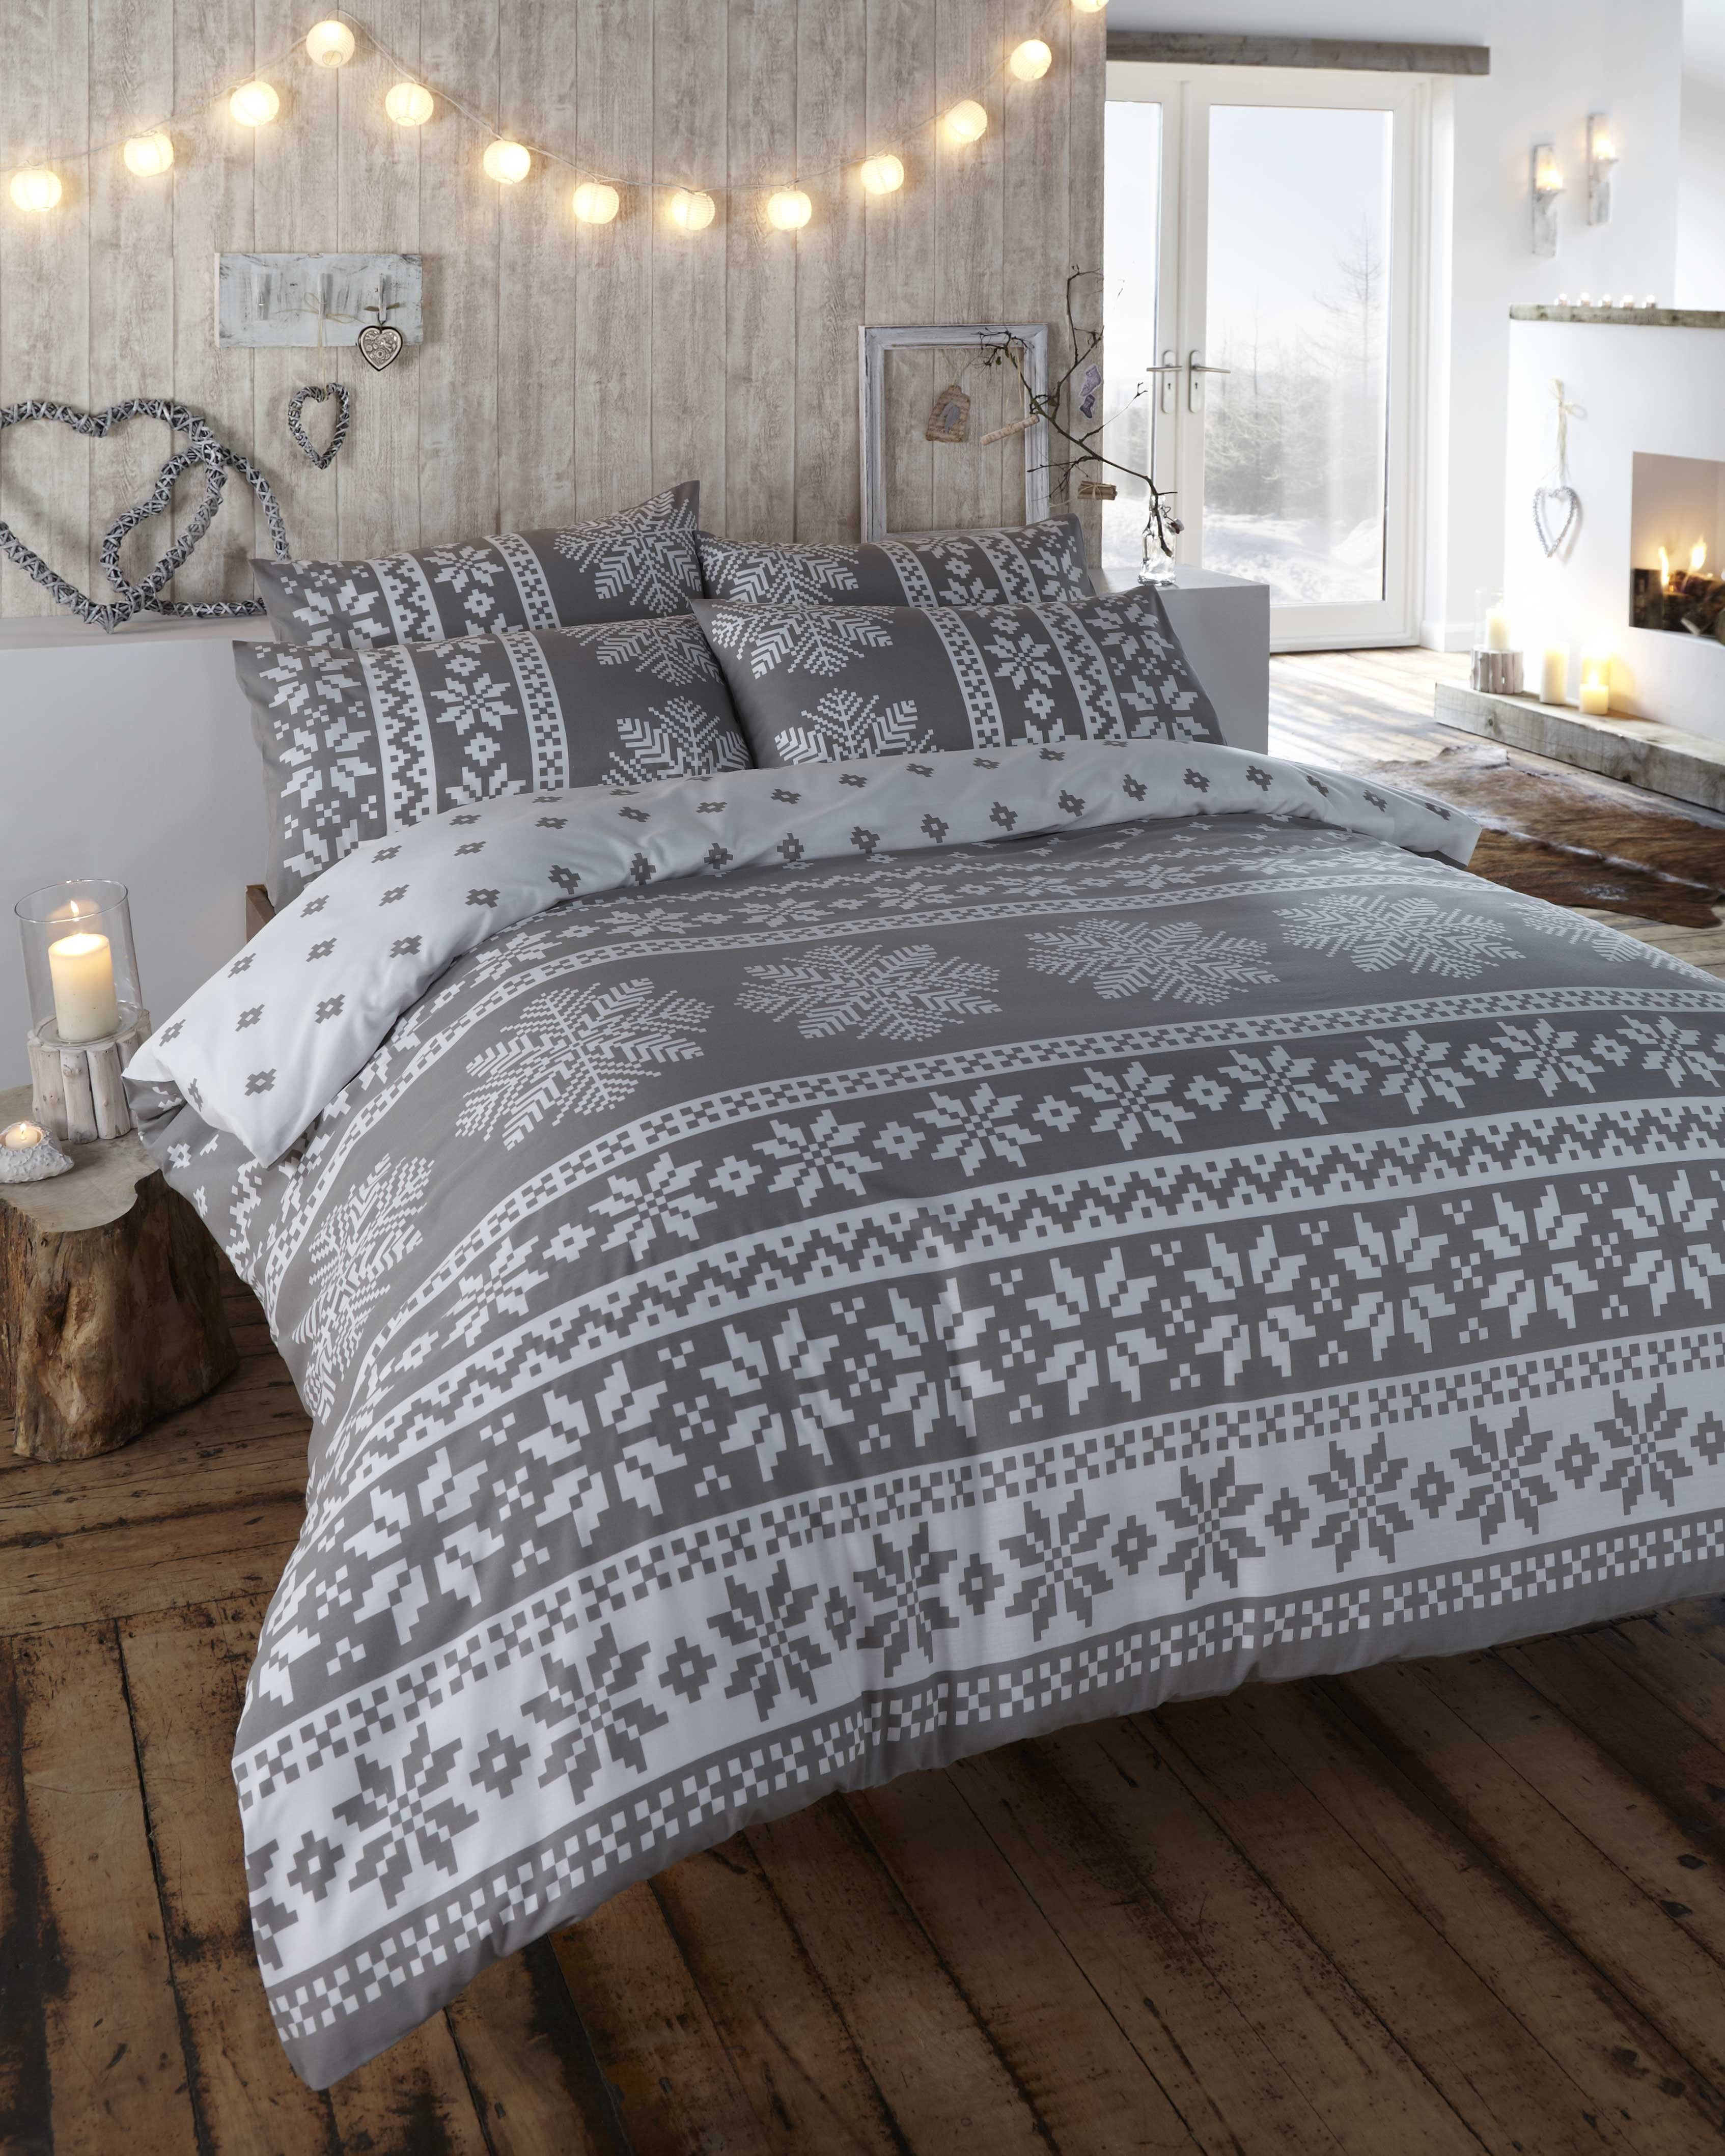 Innsbruck Grey Flannelette Duvet Cover Set King Size Dream Home Christmas